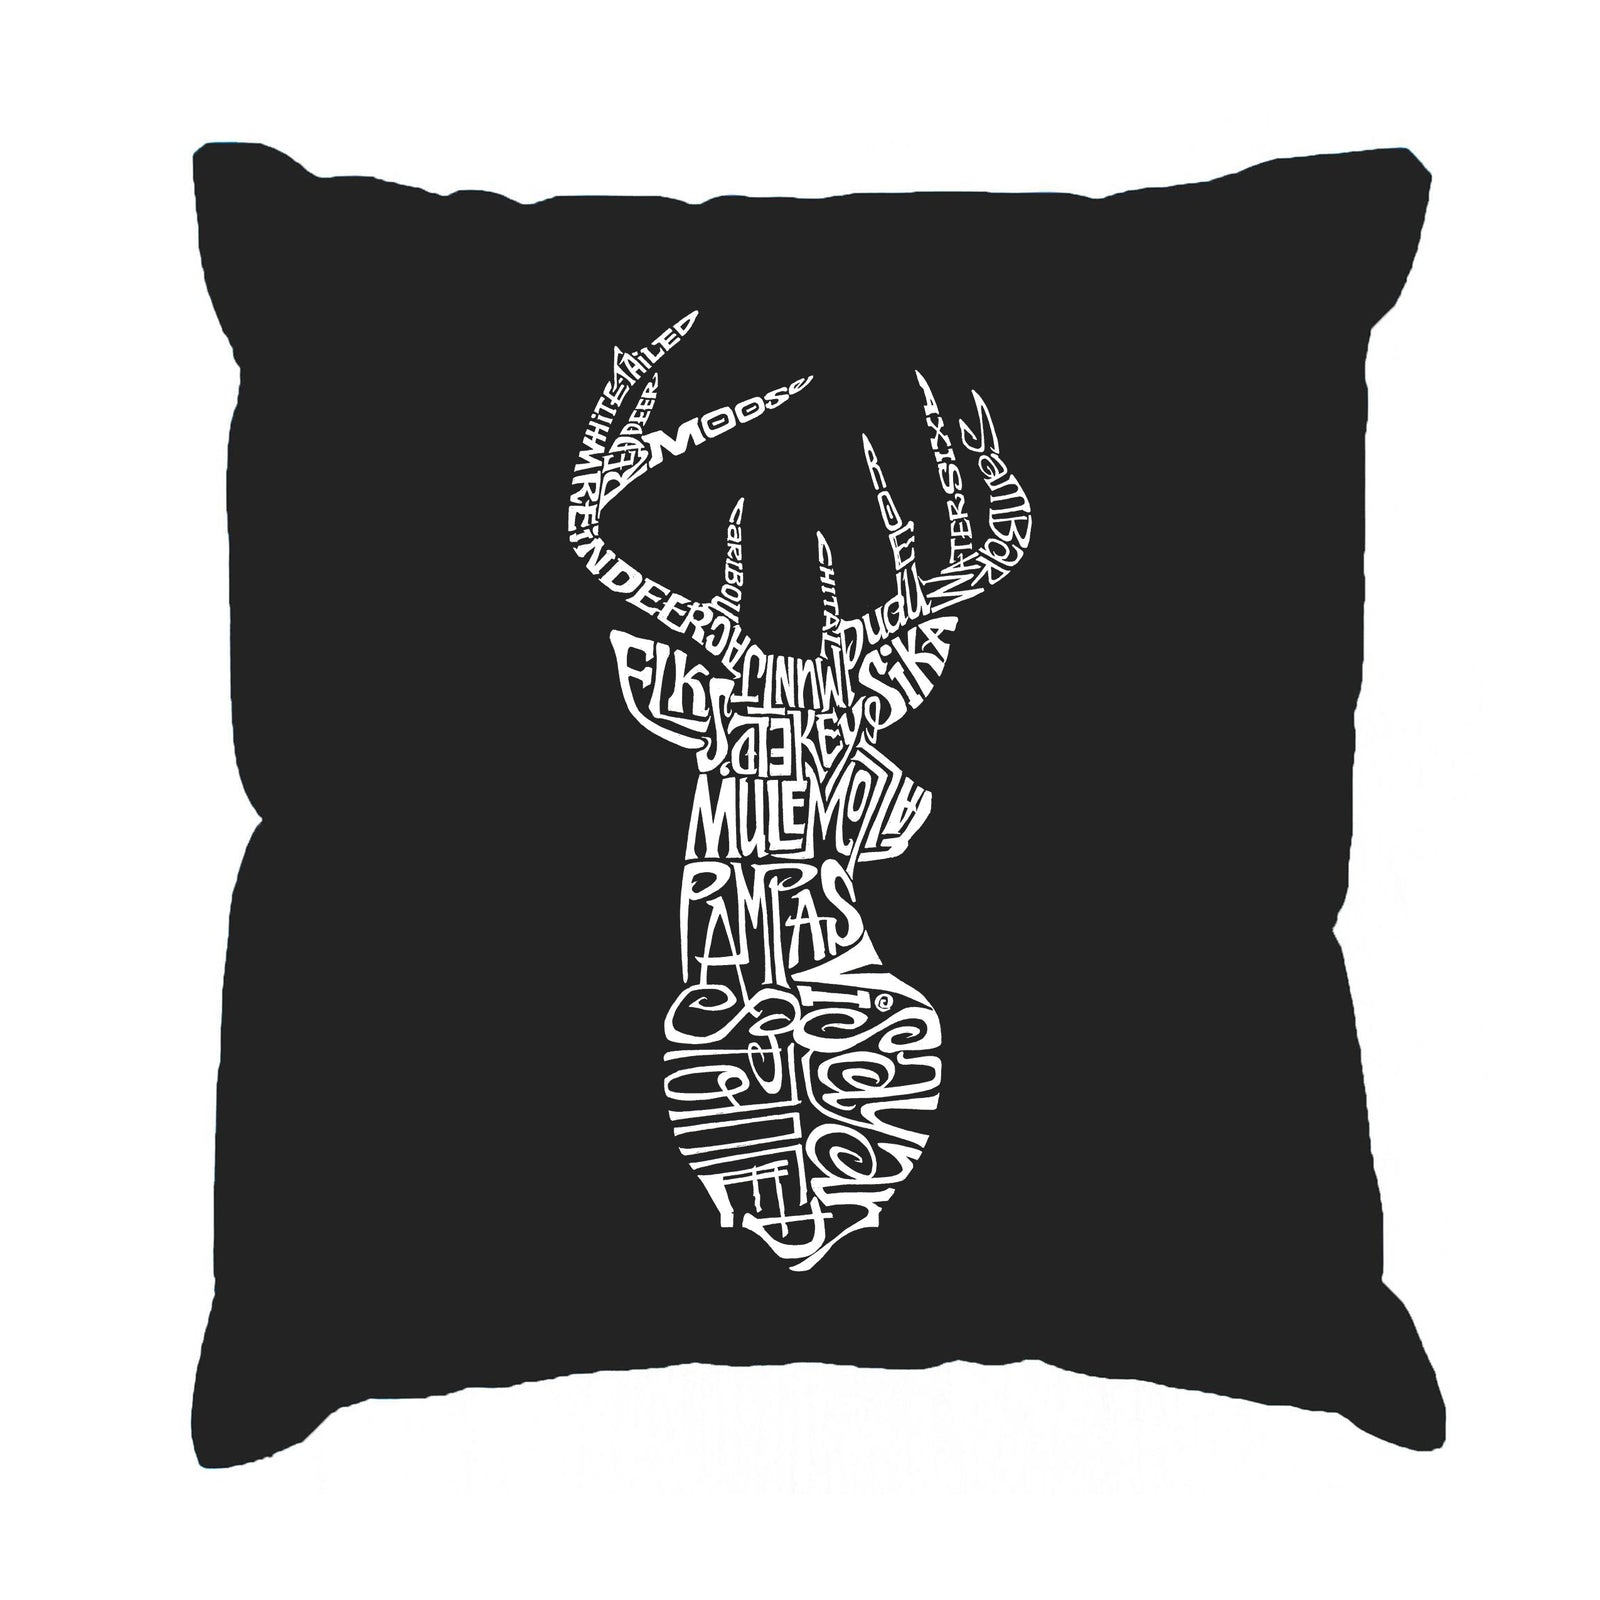 Throw Pillow Cover - Types of Deer